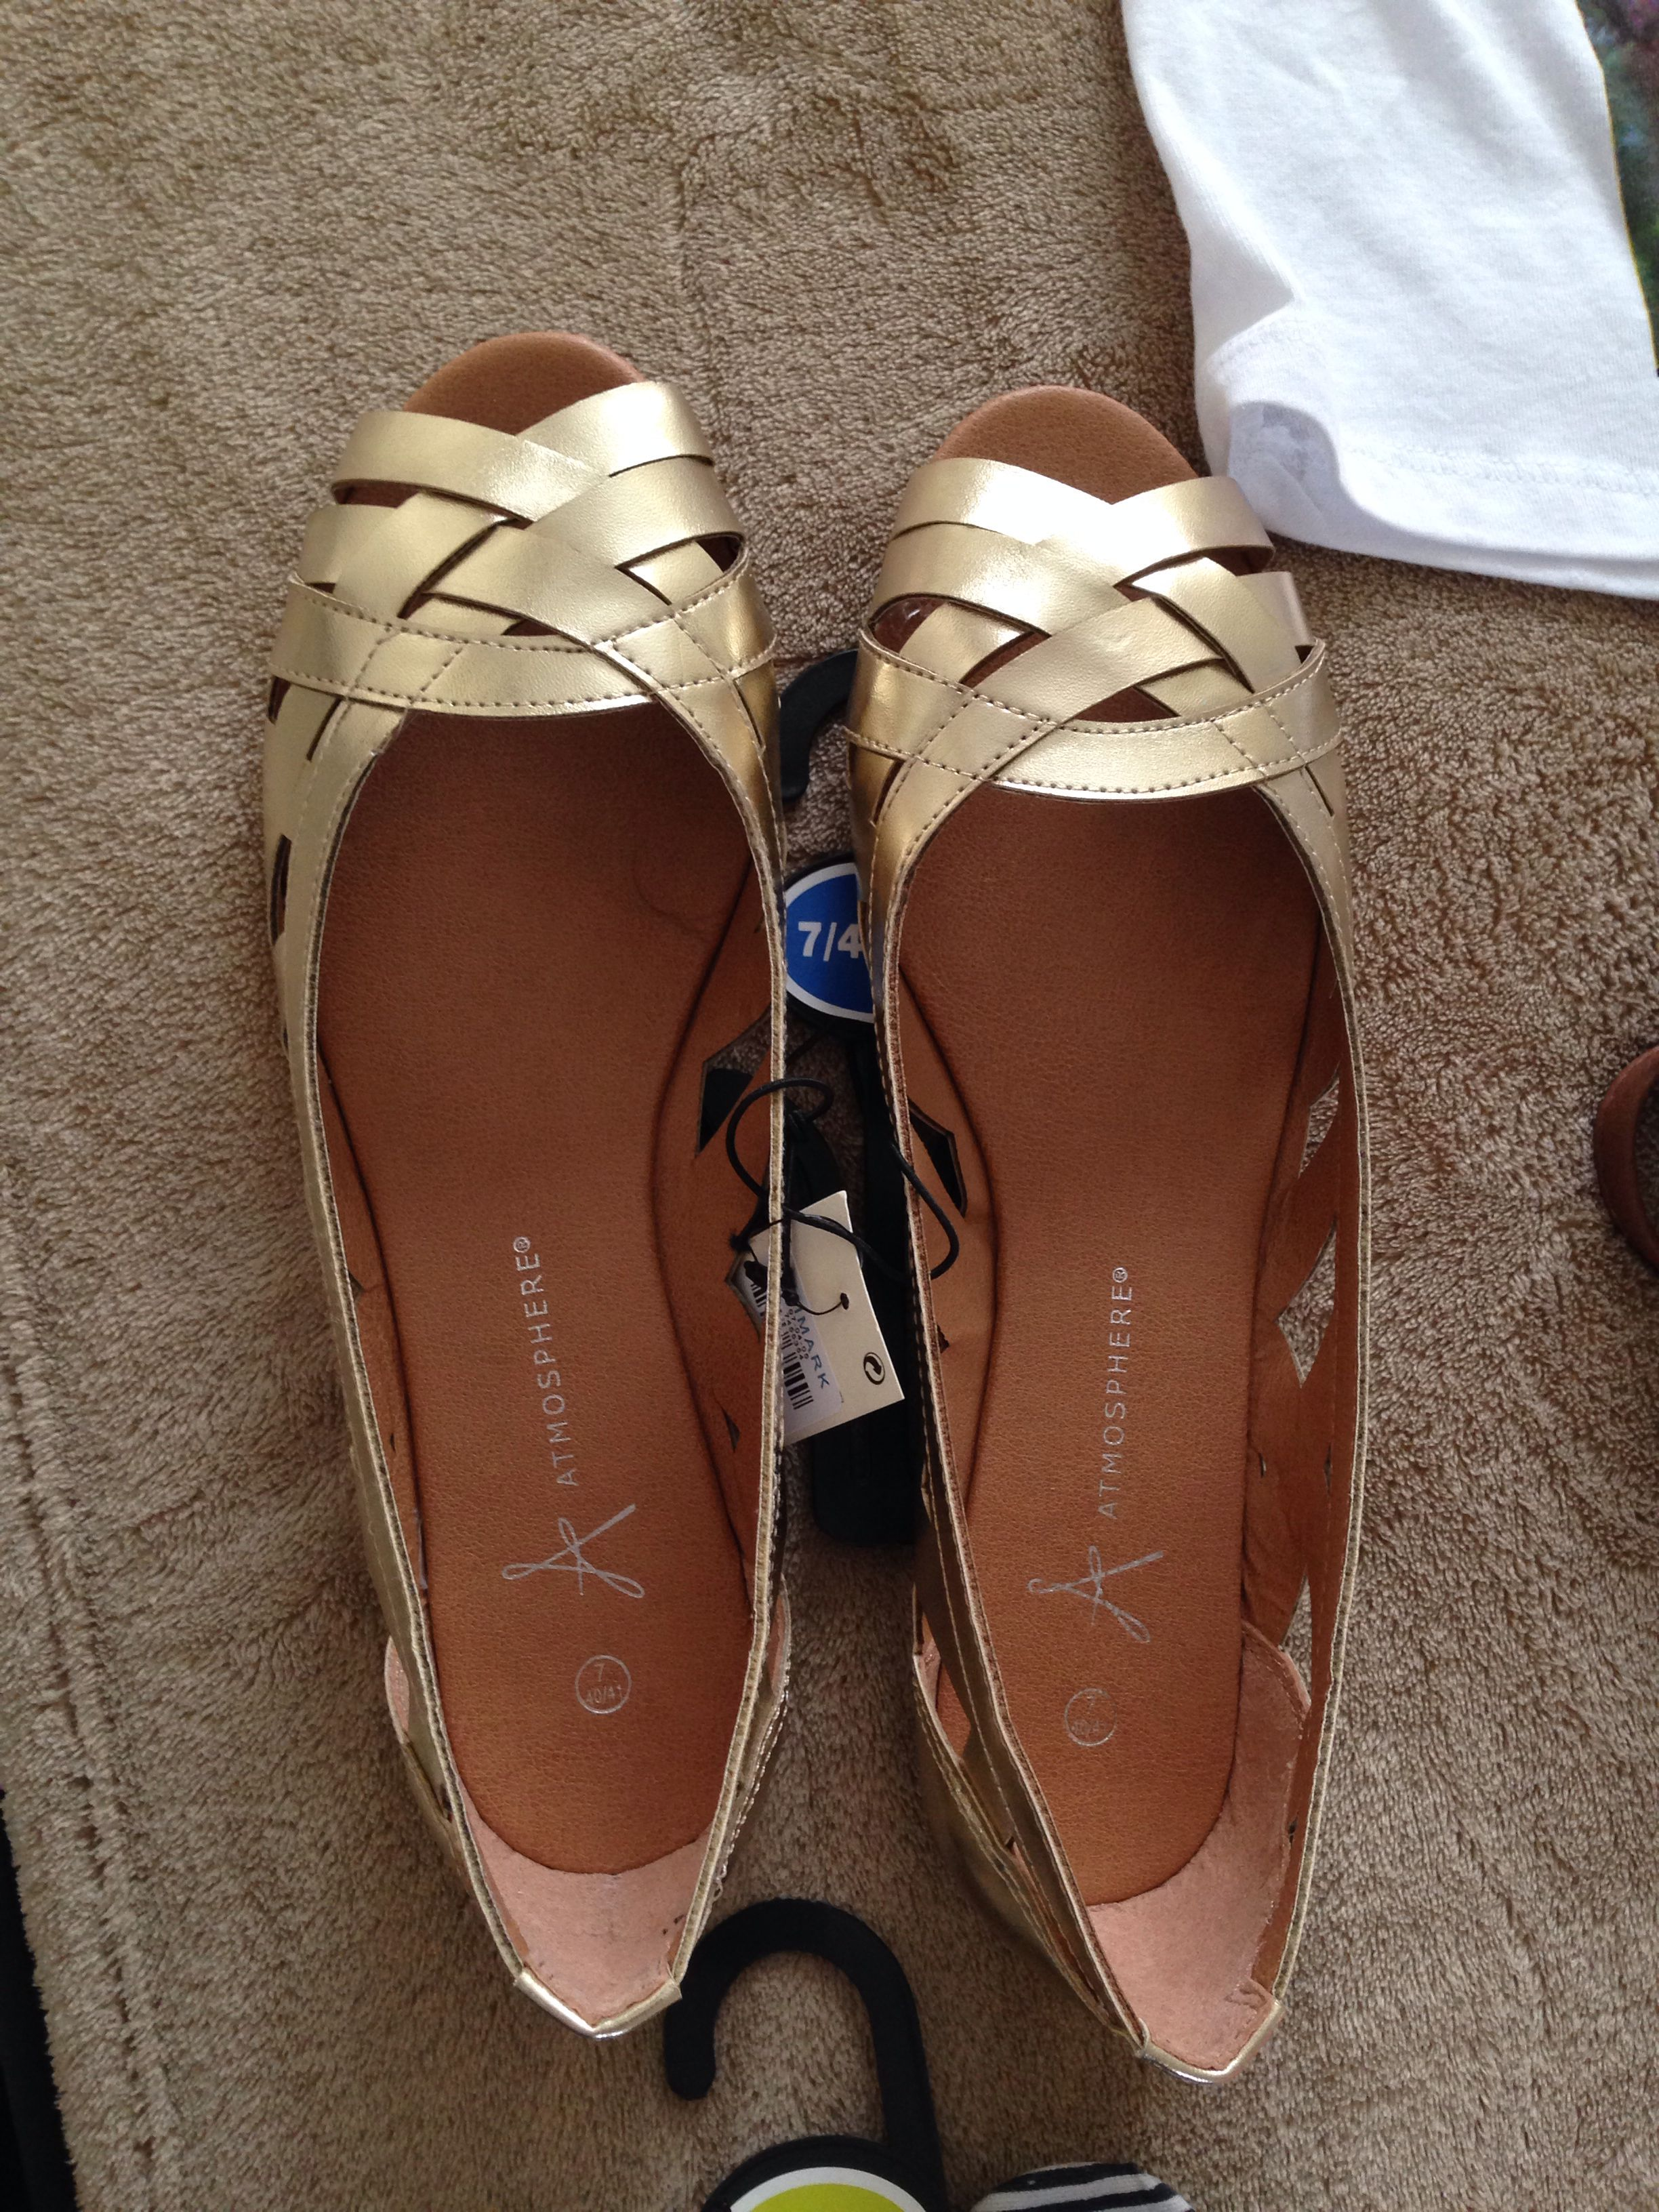 Primark gold peep toe sandals my style pinterest - My peep toes ...